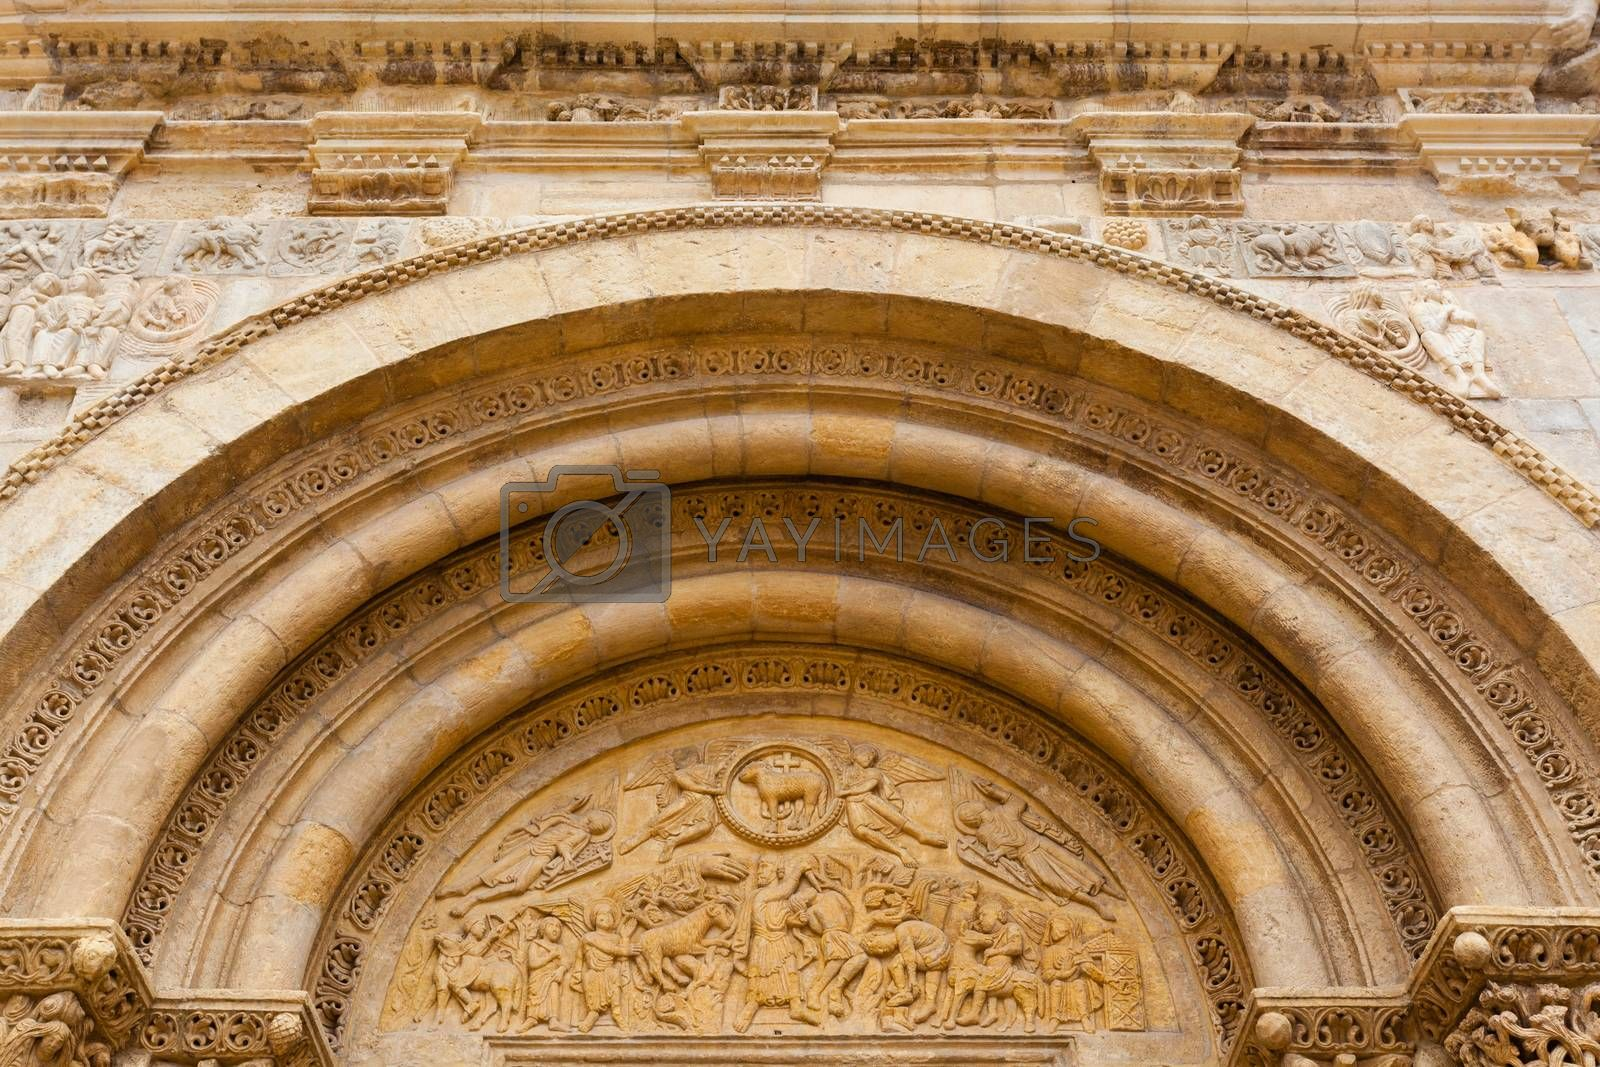 Closeup view of romanesque arhivolts and carved tympanum in the main entrance door of the San Isidoro Collegiate church in Leon, Spain